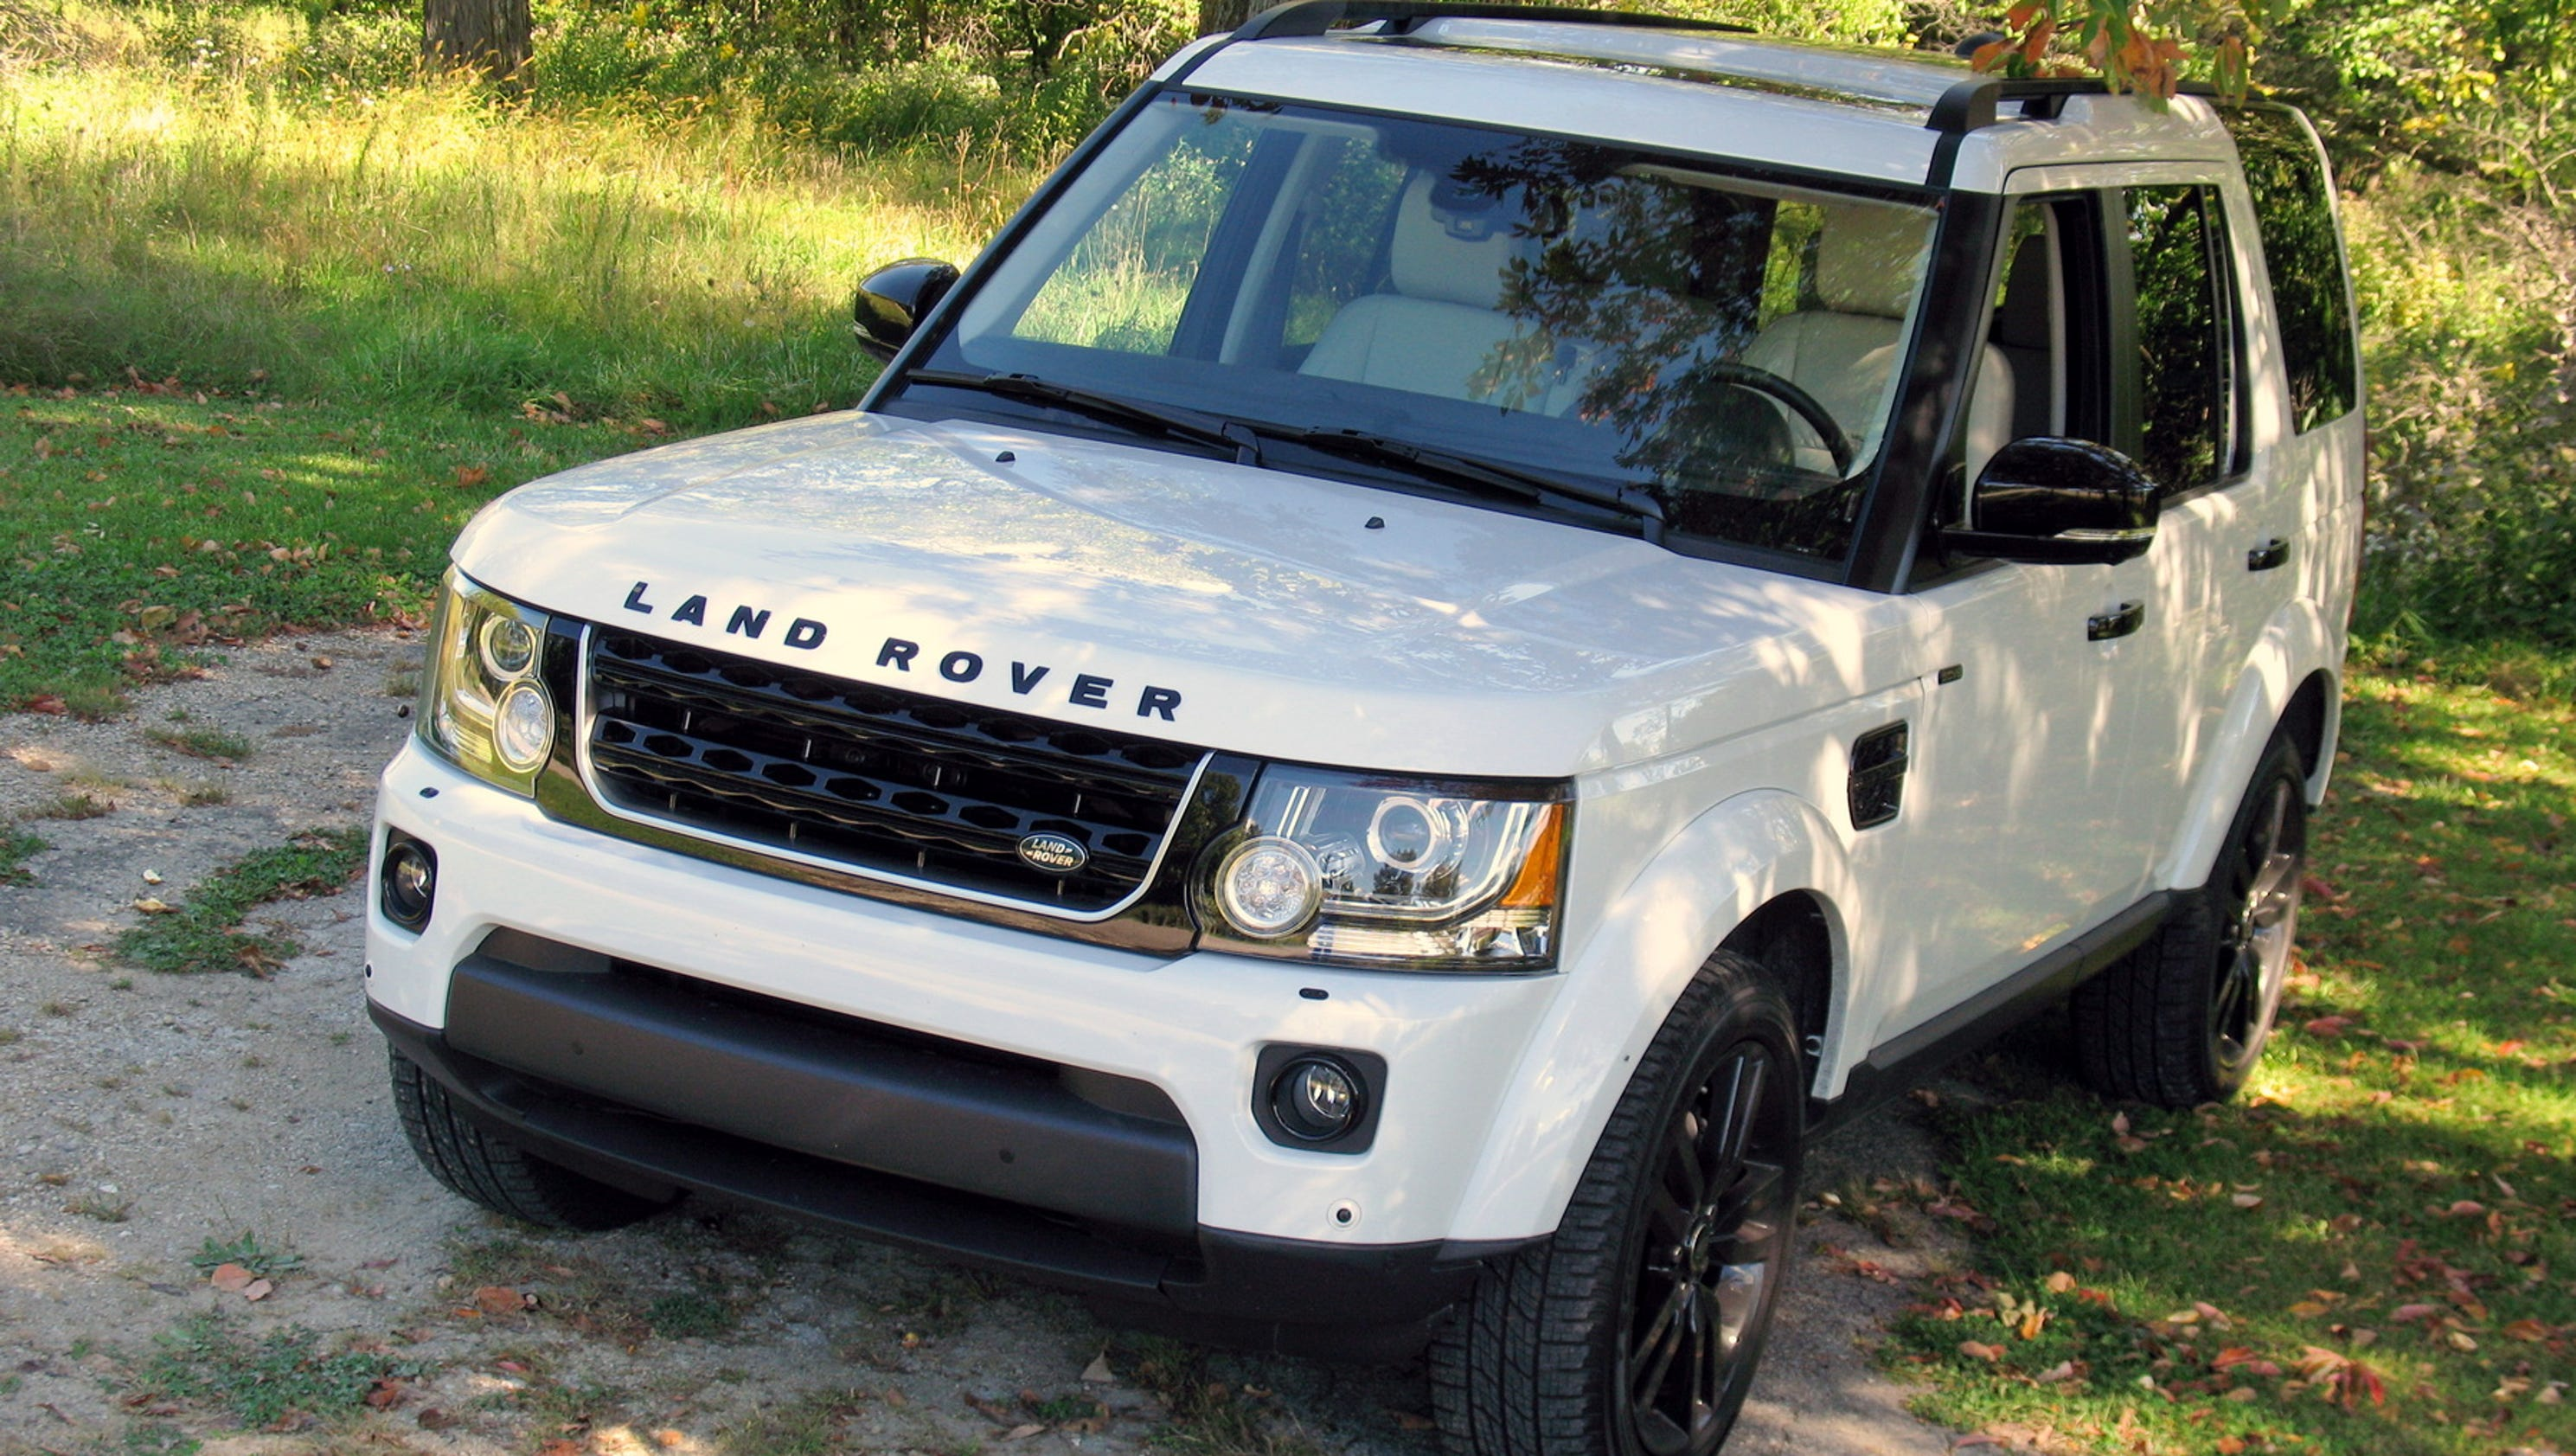 sale hse for near c used landrover rover htm beach land redondo stock lux